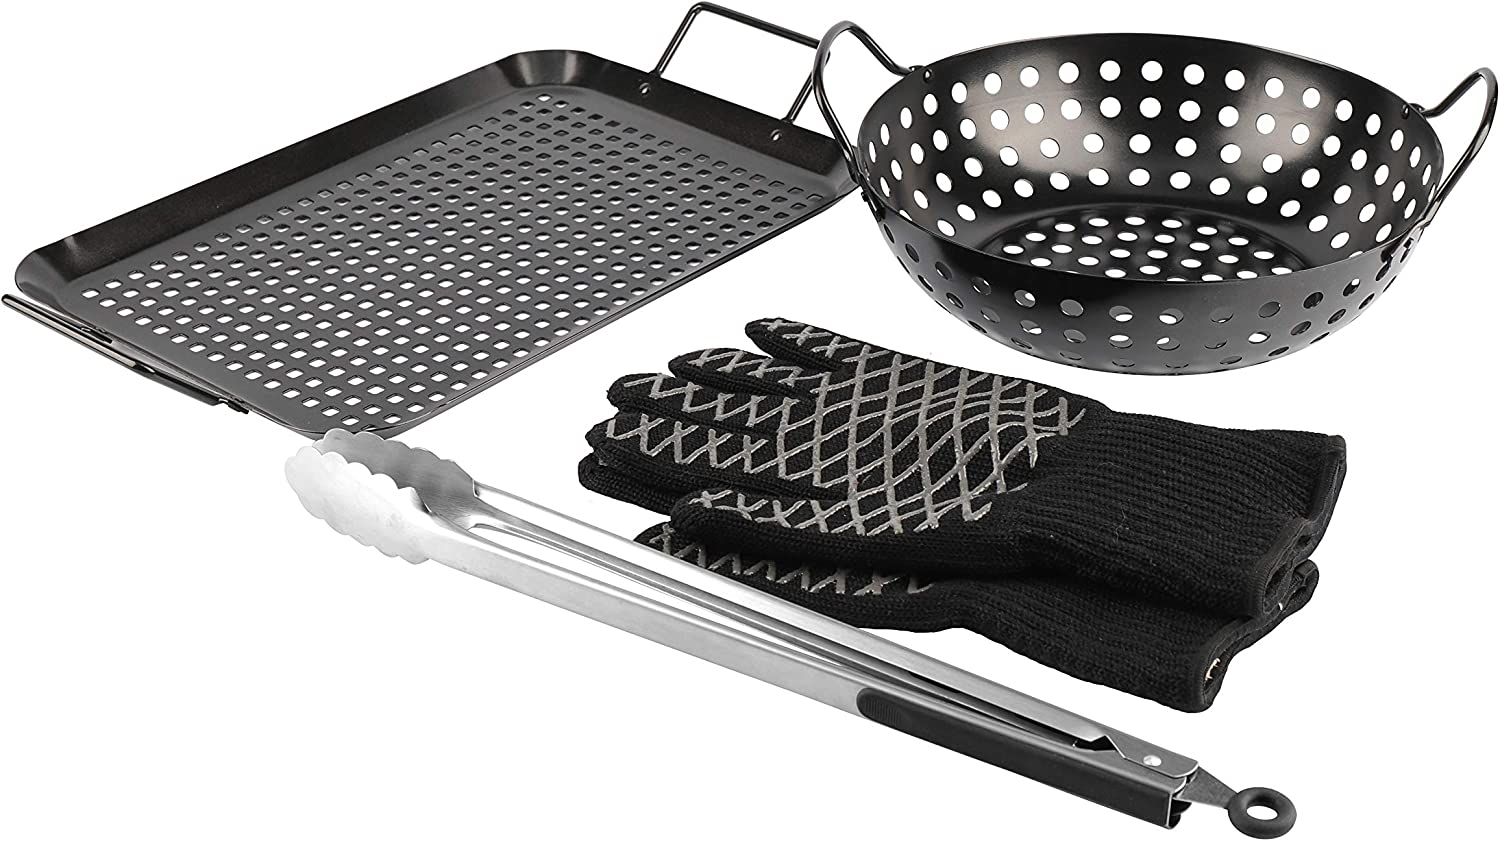 PitMaster Save money King Grill Topper All items in the store BBQ Grilling Pan 5- Black Tray Matte